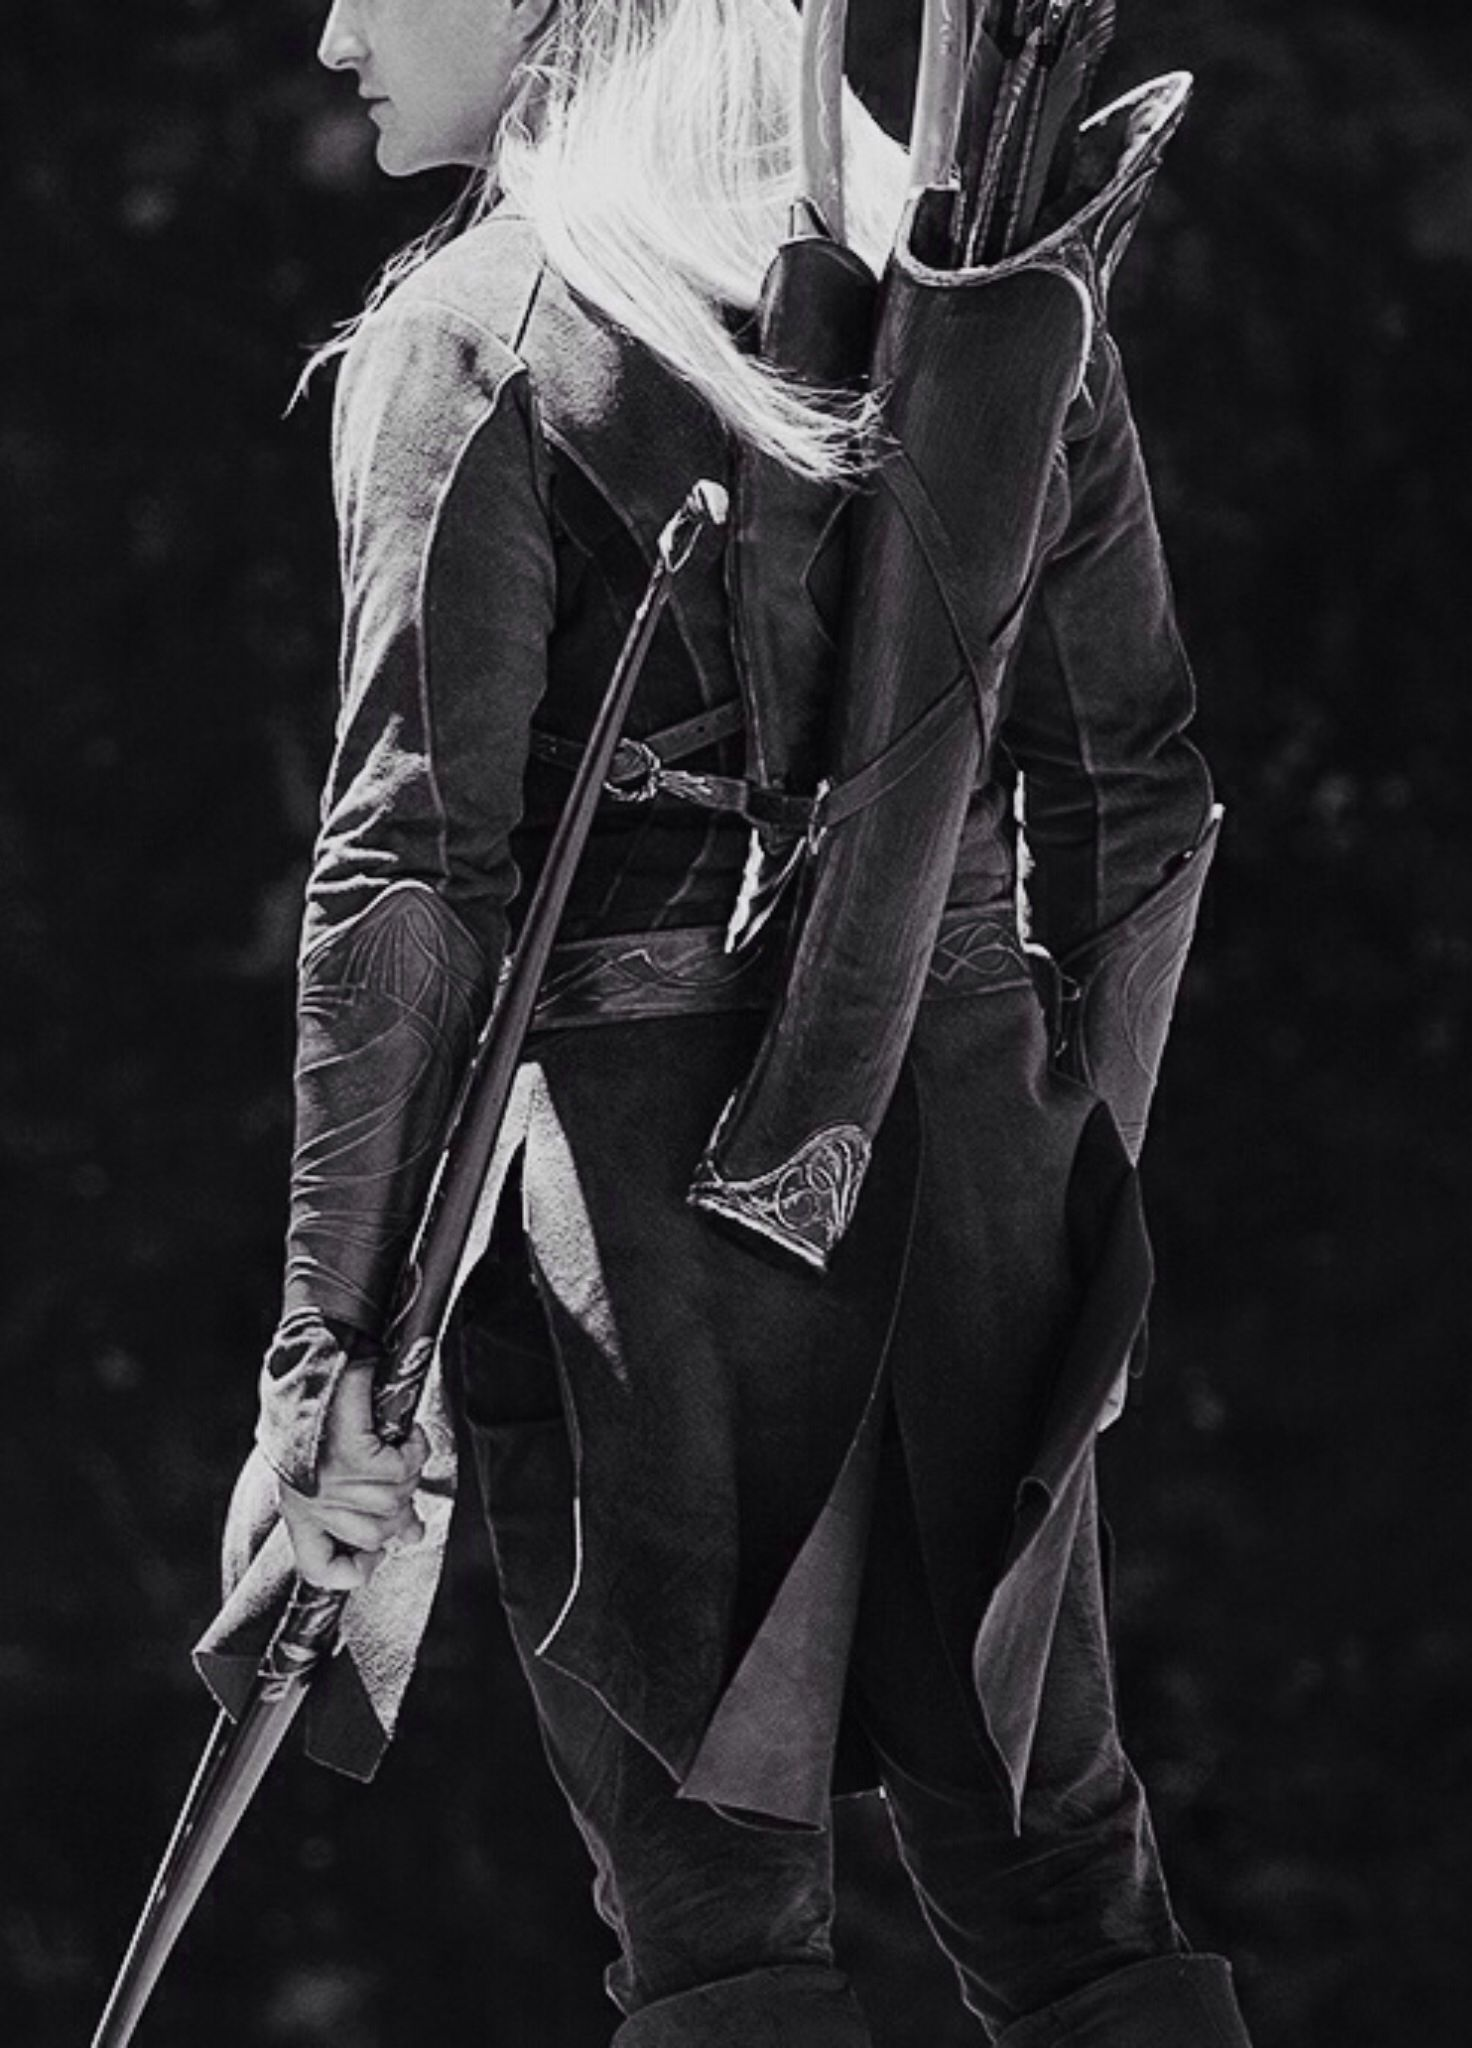 Legolas. I always thought Orlando was wonderful as Legolas. For some reason he left me scratching my head as Will Turner.